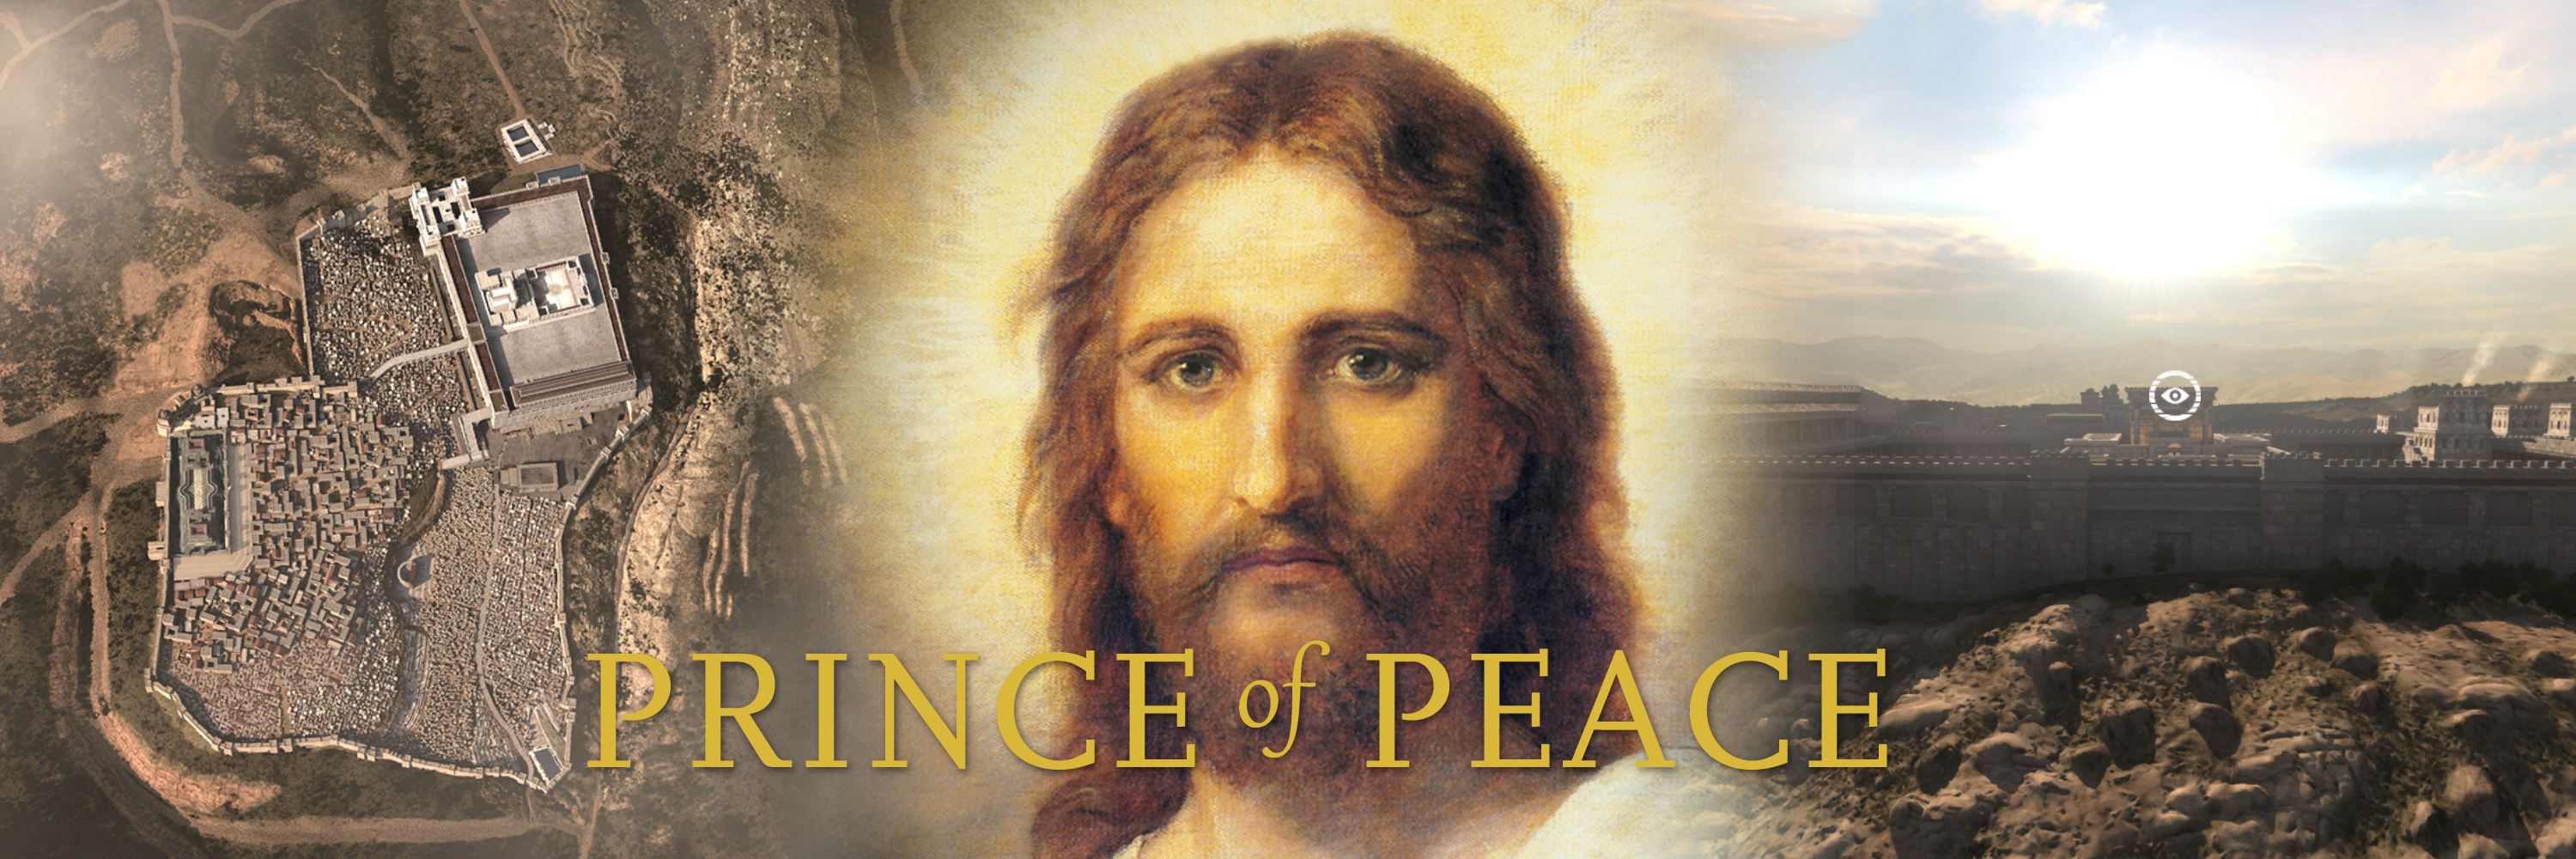 Prince of Peace banner featuring BYU's Virtual New Testament App